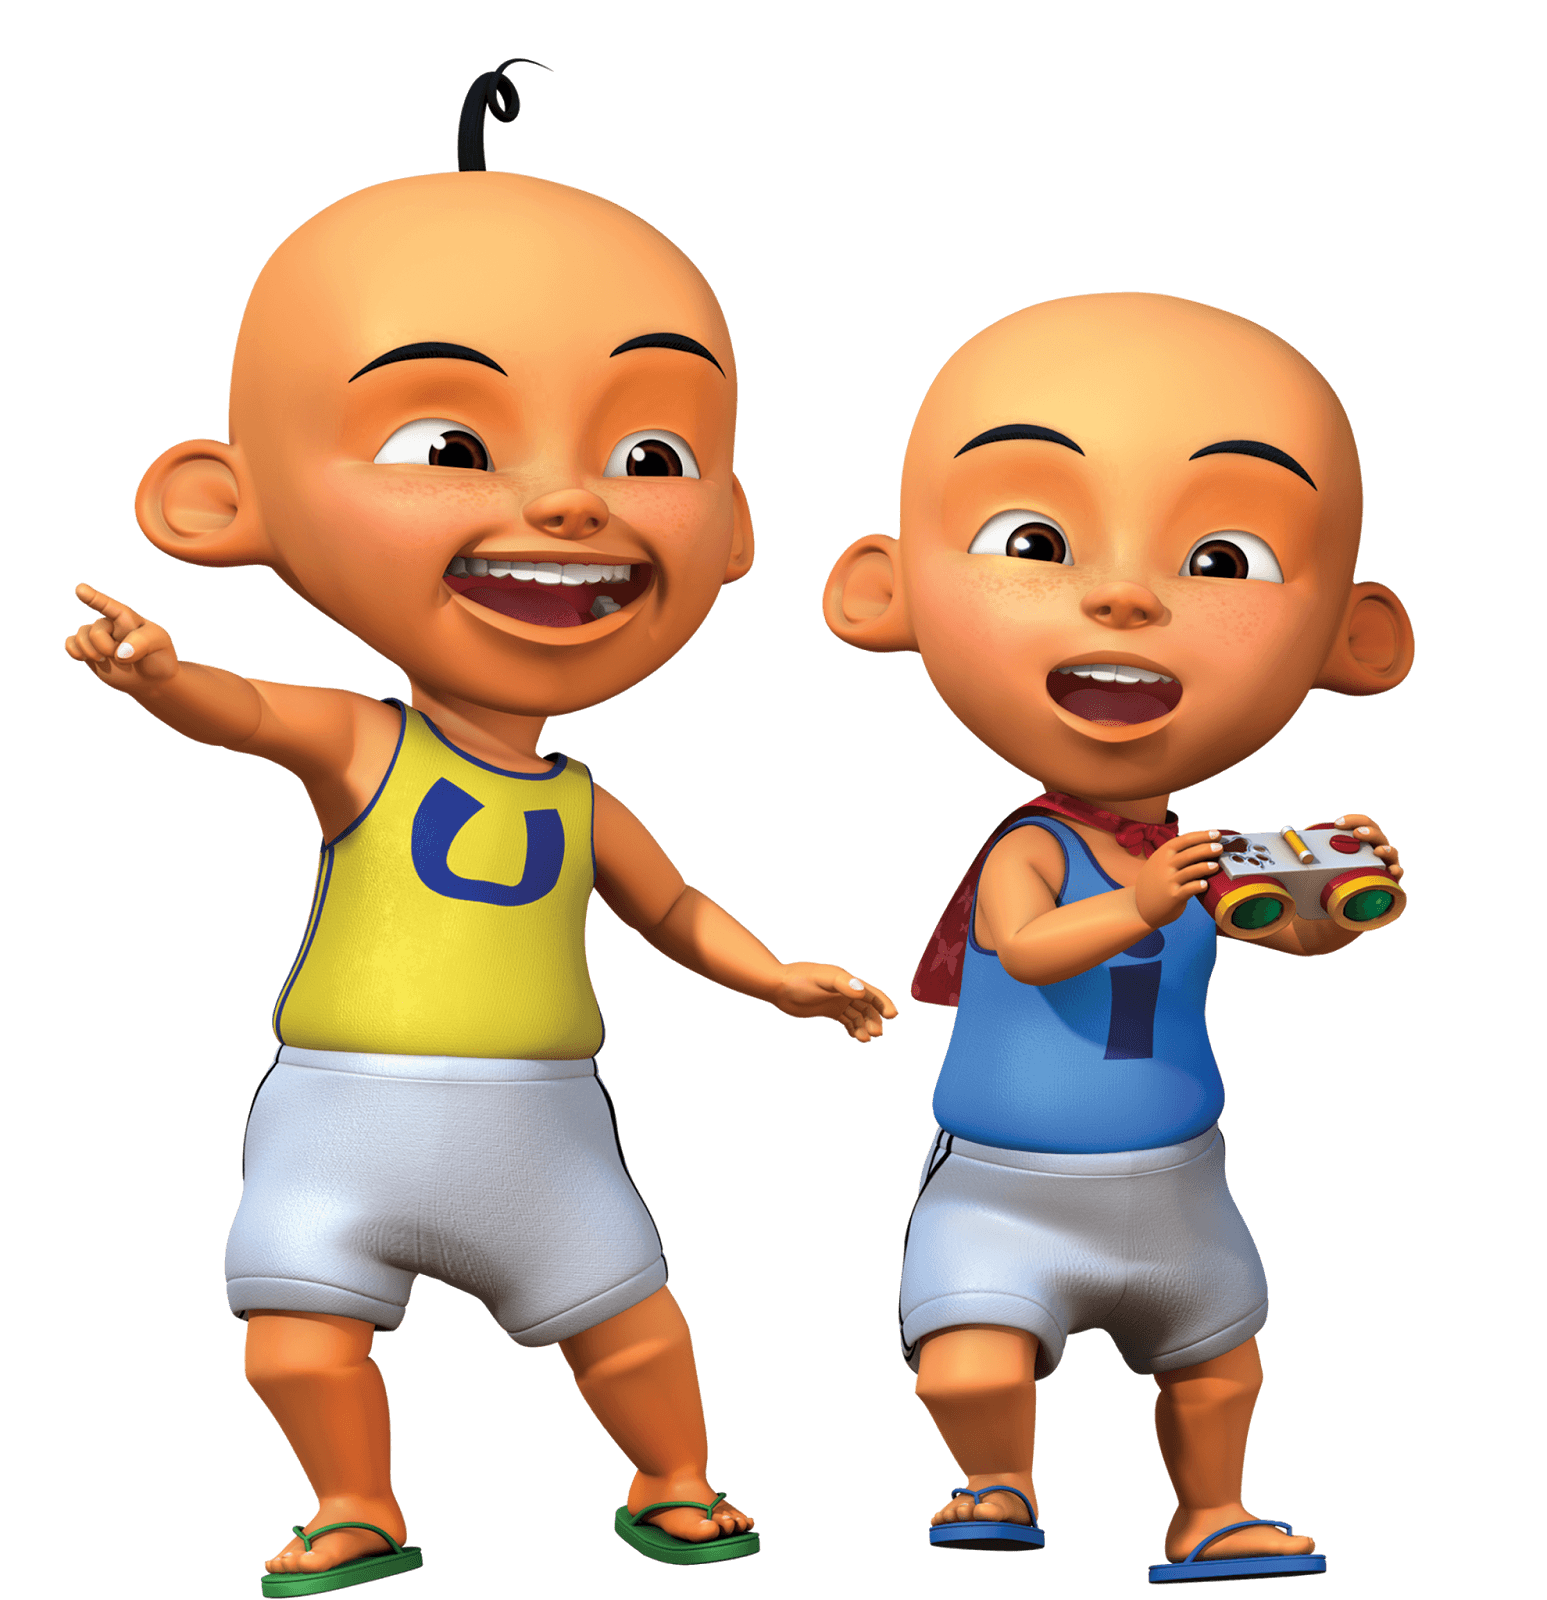 Upin Ipin Wallpapers Wallpaper Cave